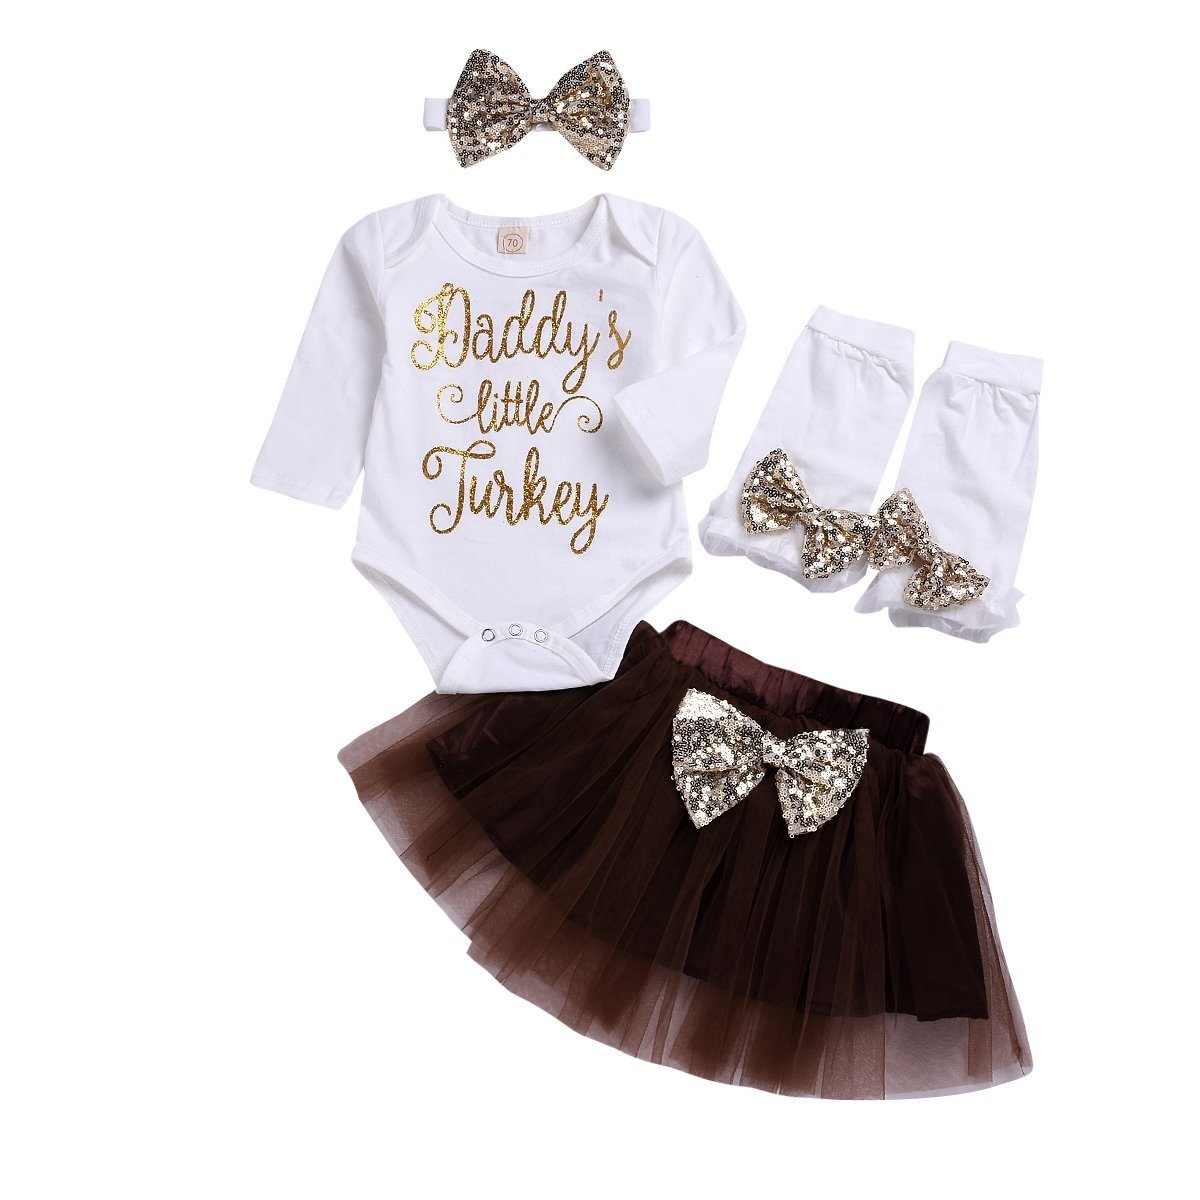 b8b2437e20ce Amazon.com: Infant Baby Girls Thanksgiving Outfit Newborn Romper Tops +  Tutu Skirt + Leg Warmers + Headband 4PCS Set (White, 6-12 Months): Clothing